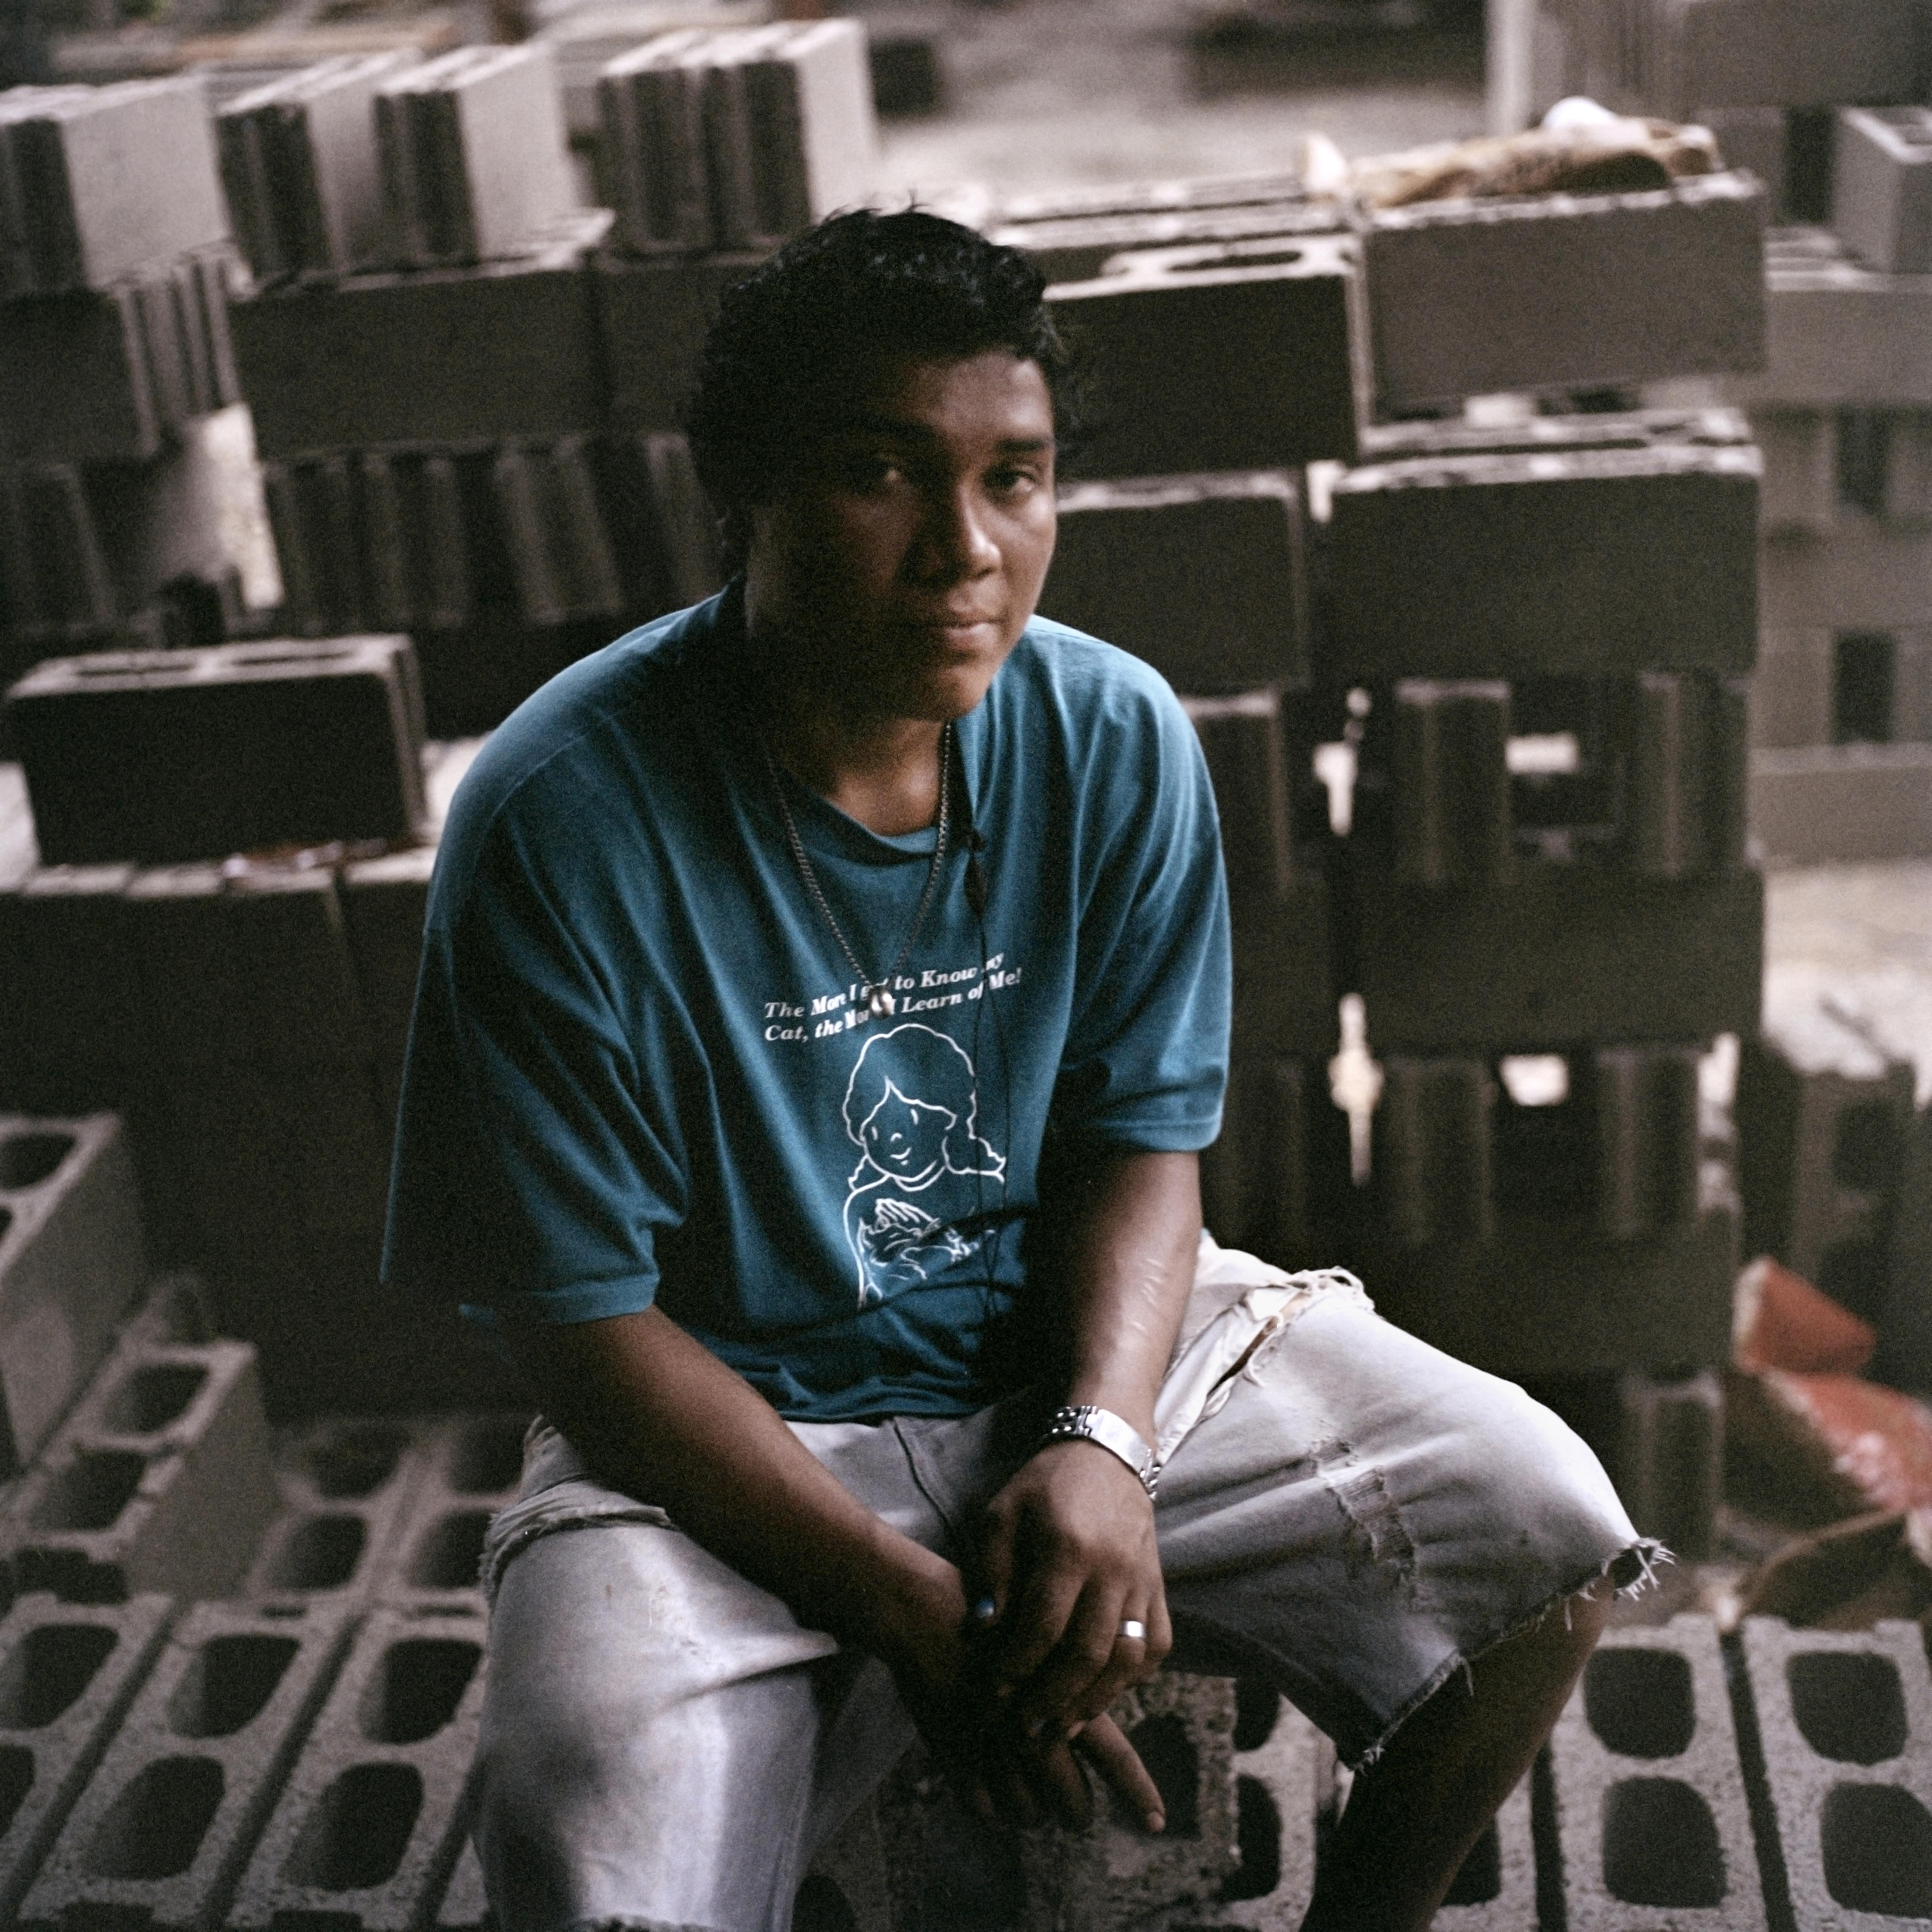 Elton, 19, who works on making bricks for construction, Bilwi, Nicaragua, August 2015.